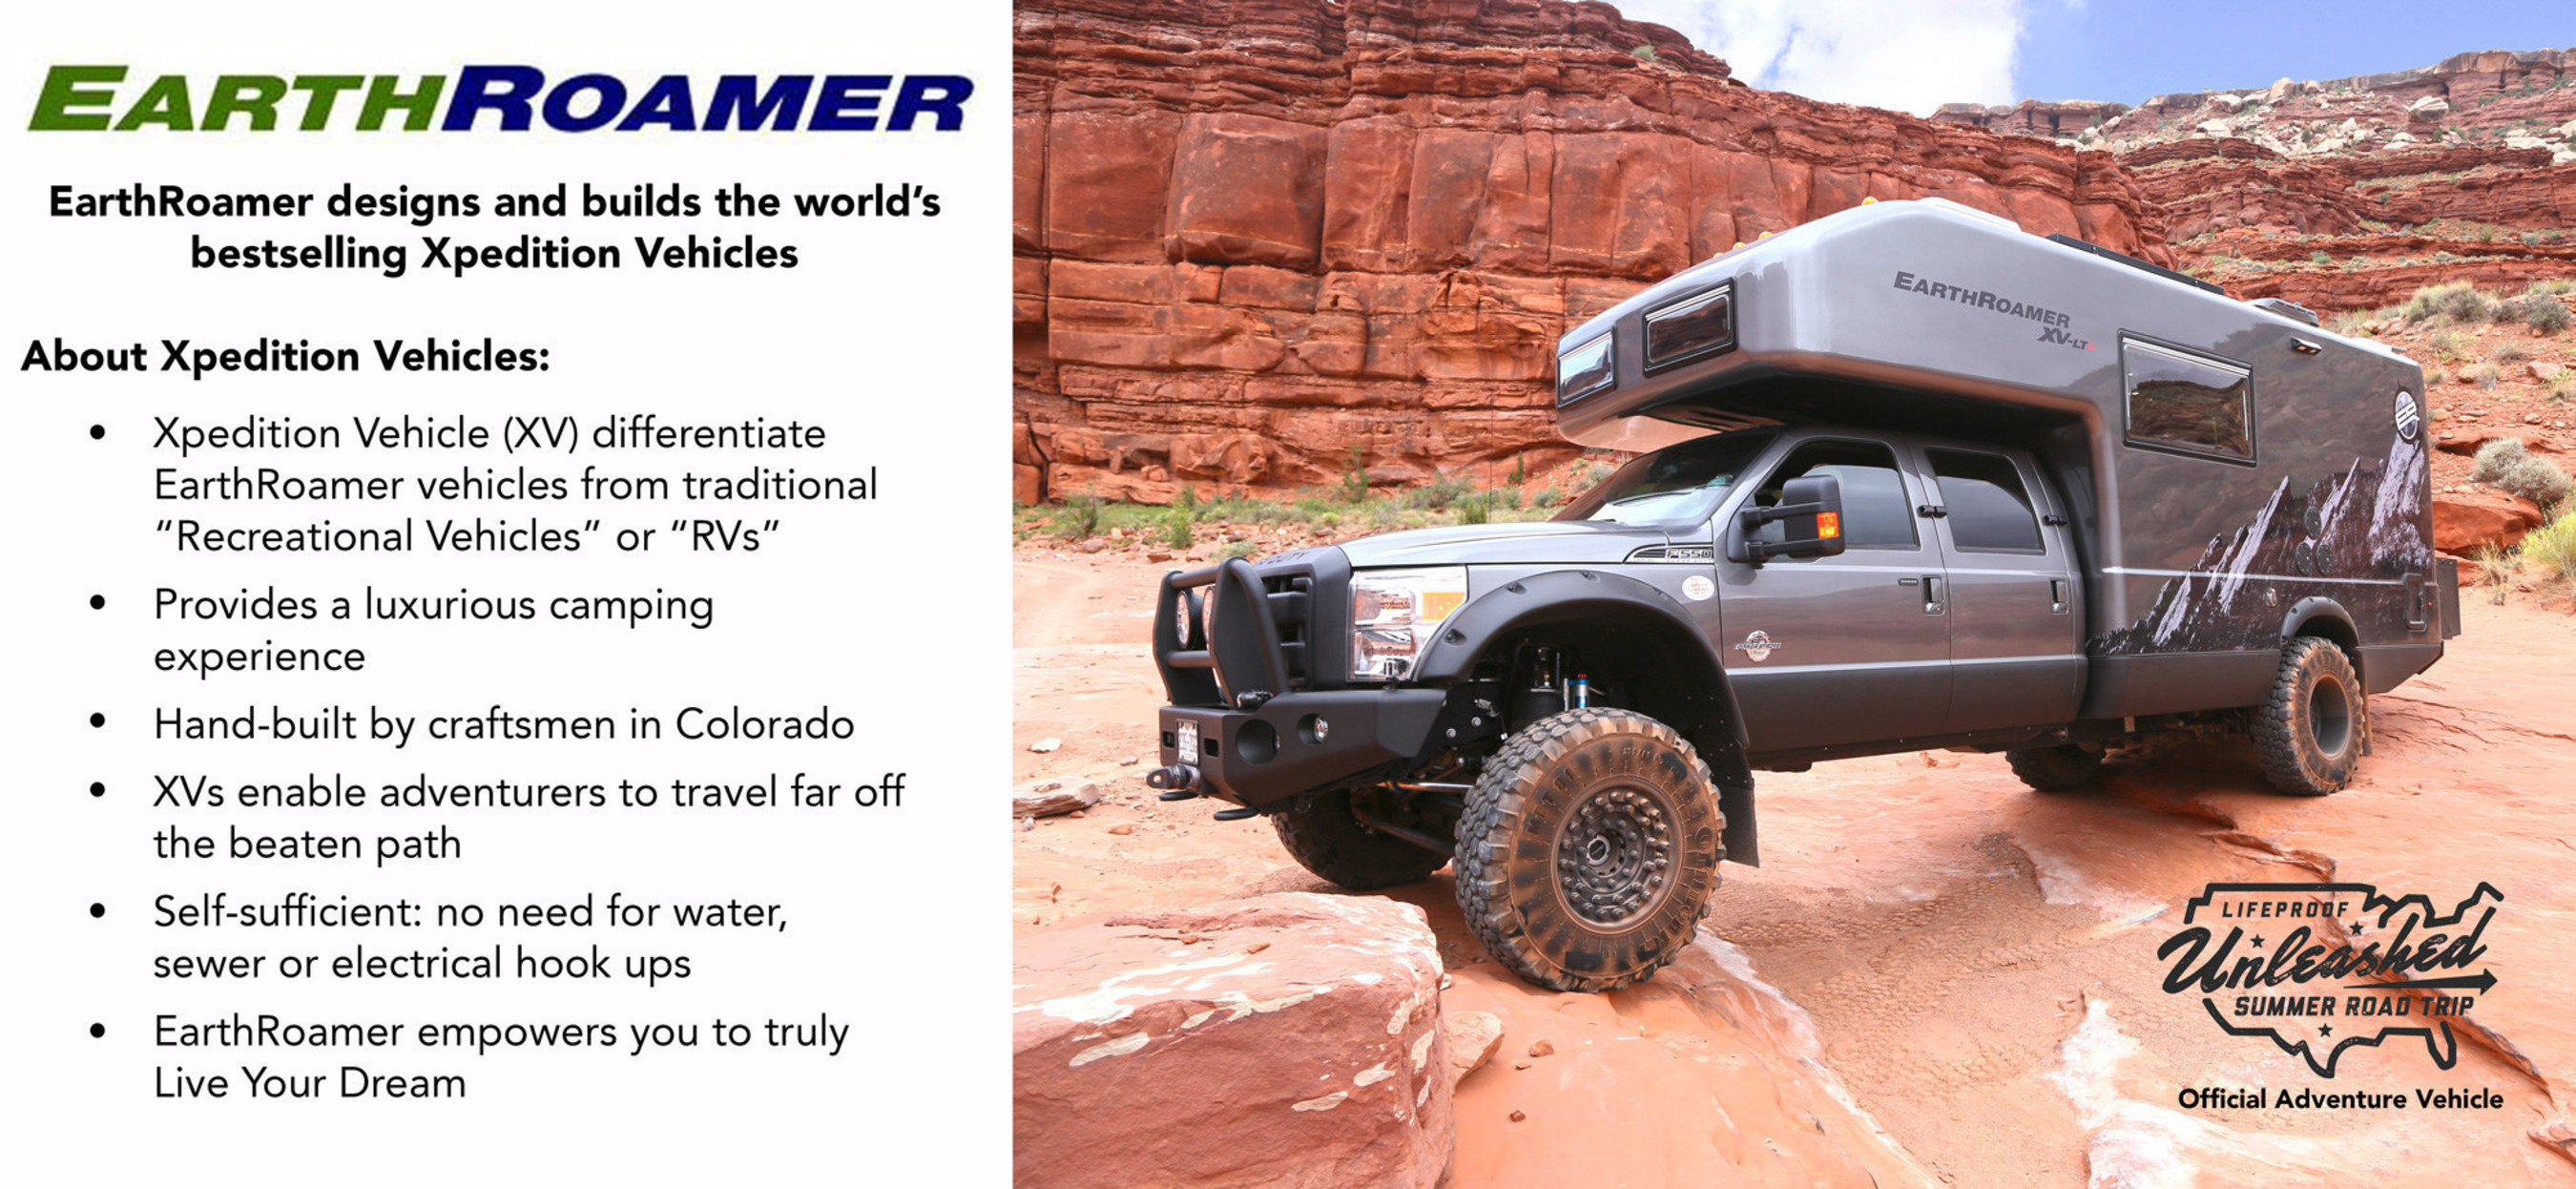 EarthRoamer Xpedition Vehicle is the official vehicle of the LifeProof Unleashed Summer Road Trip.